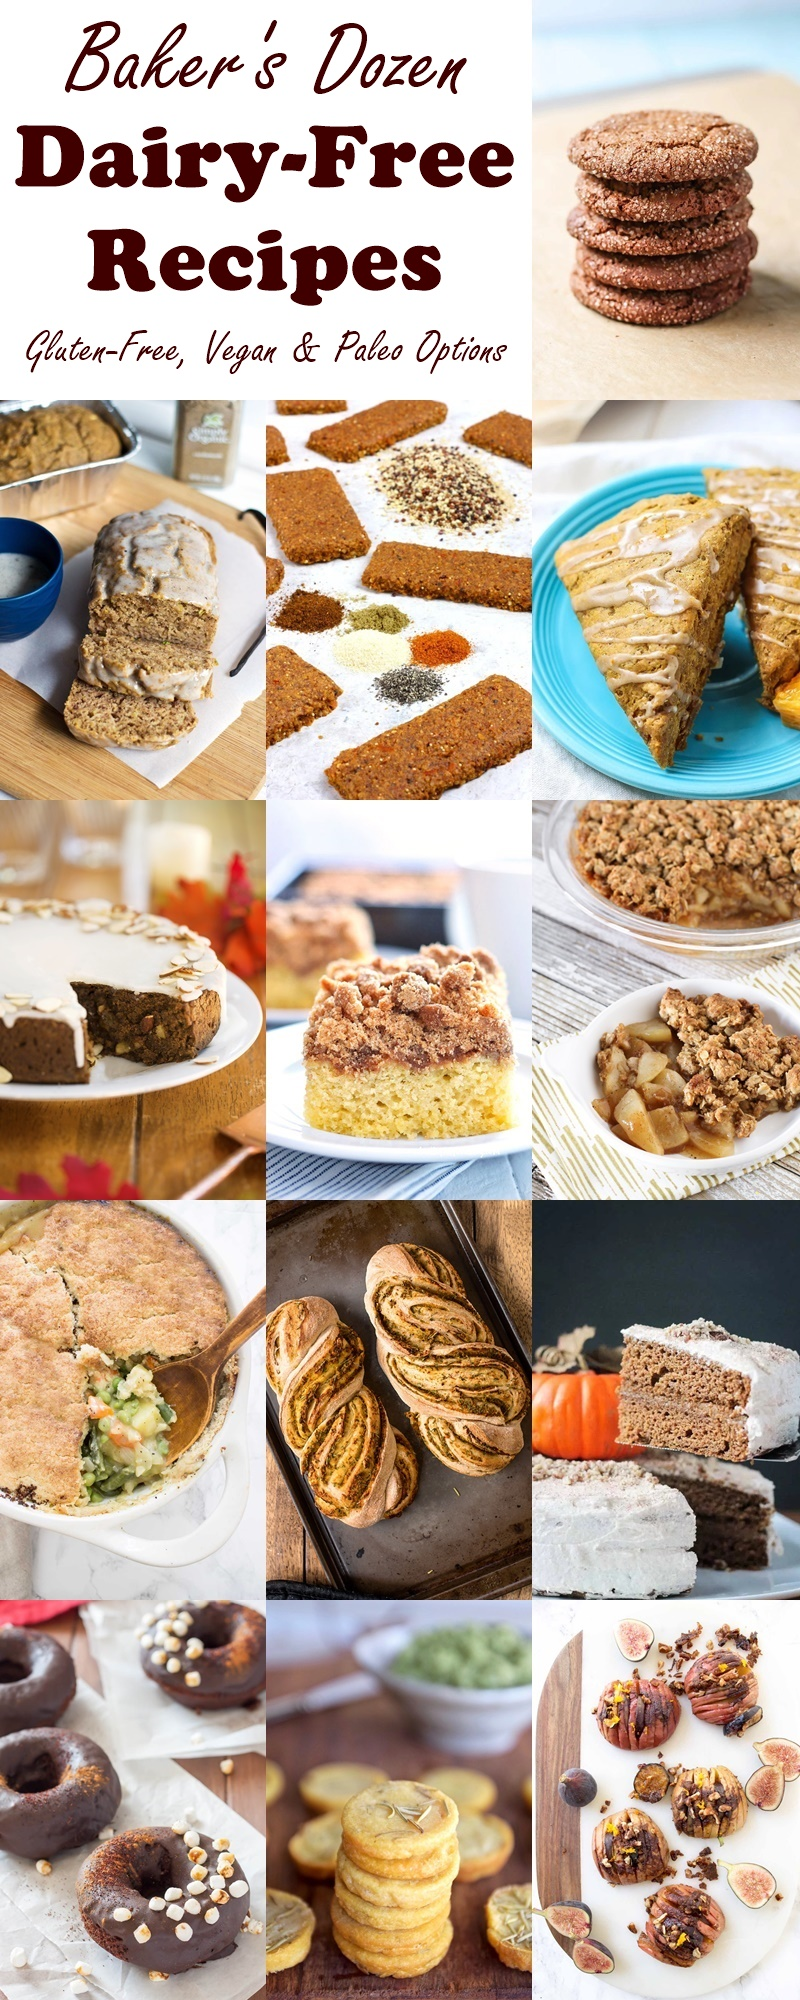 Dairy-Free Bake Off - Baker's Dozen Recipes from the pros! (gluten-free, vegan, paleo and allergy-friendly options)